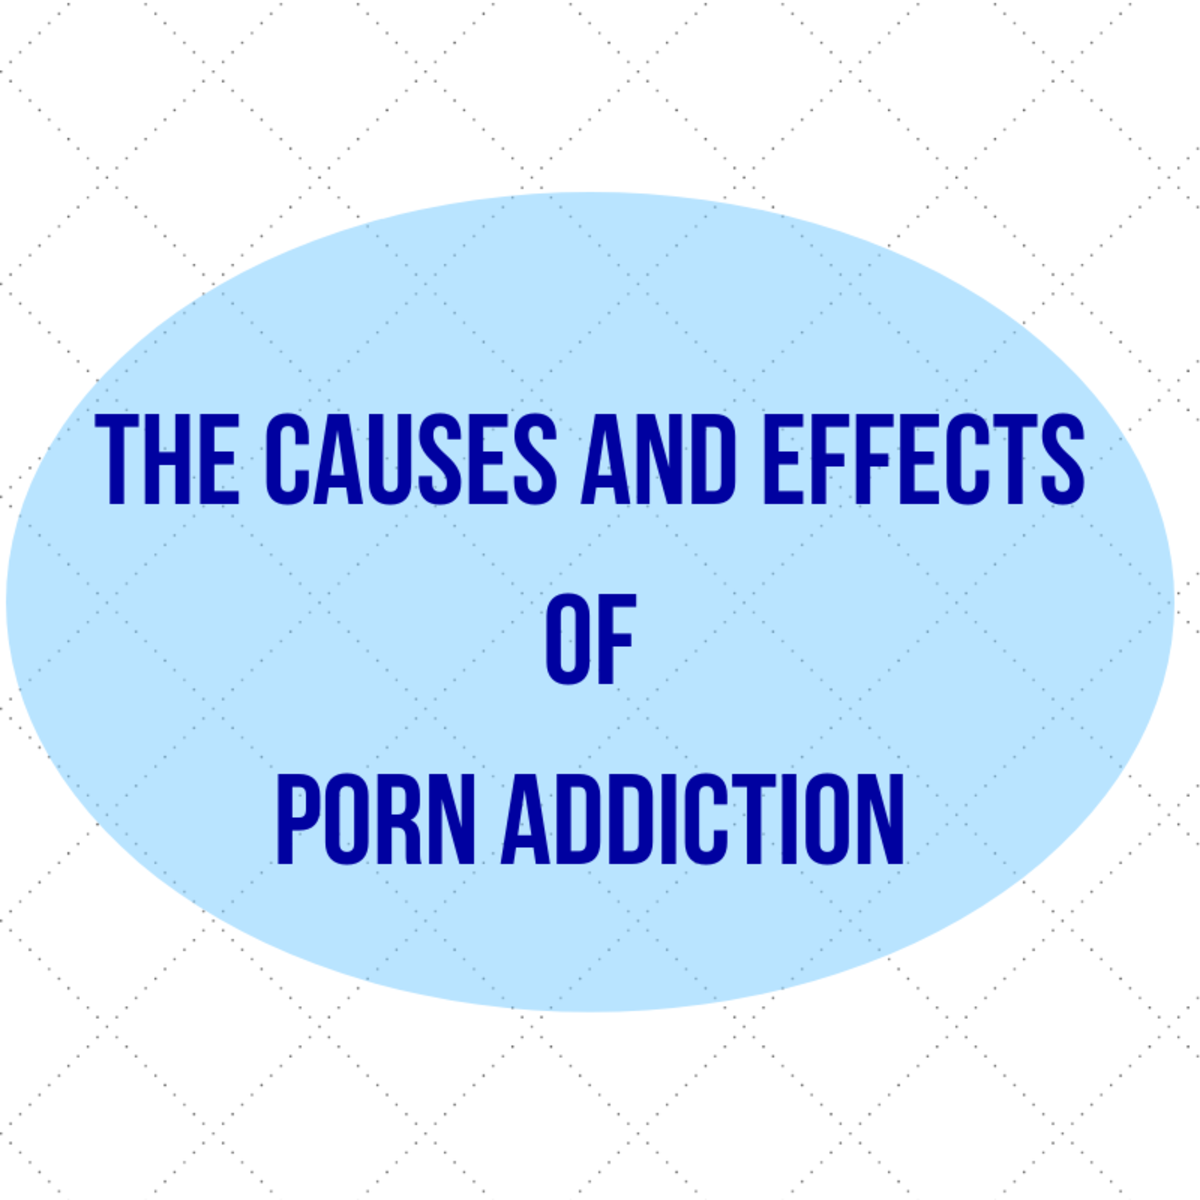 The Causes and Effects of Porn Addiction